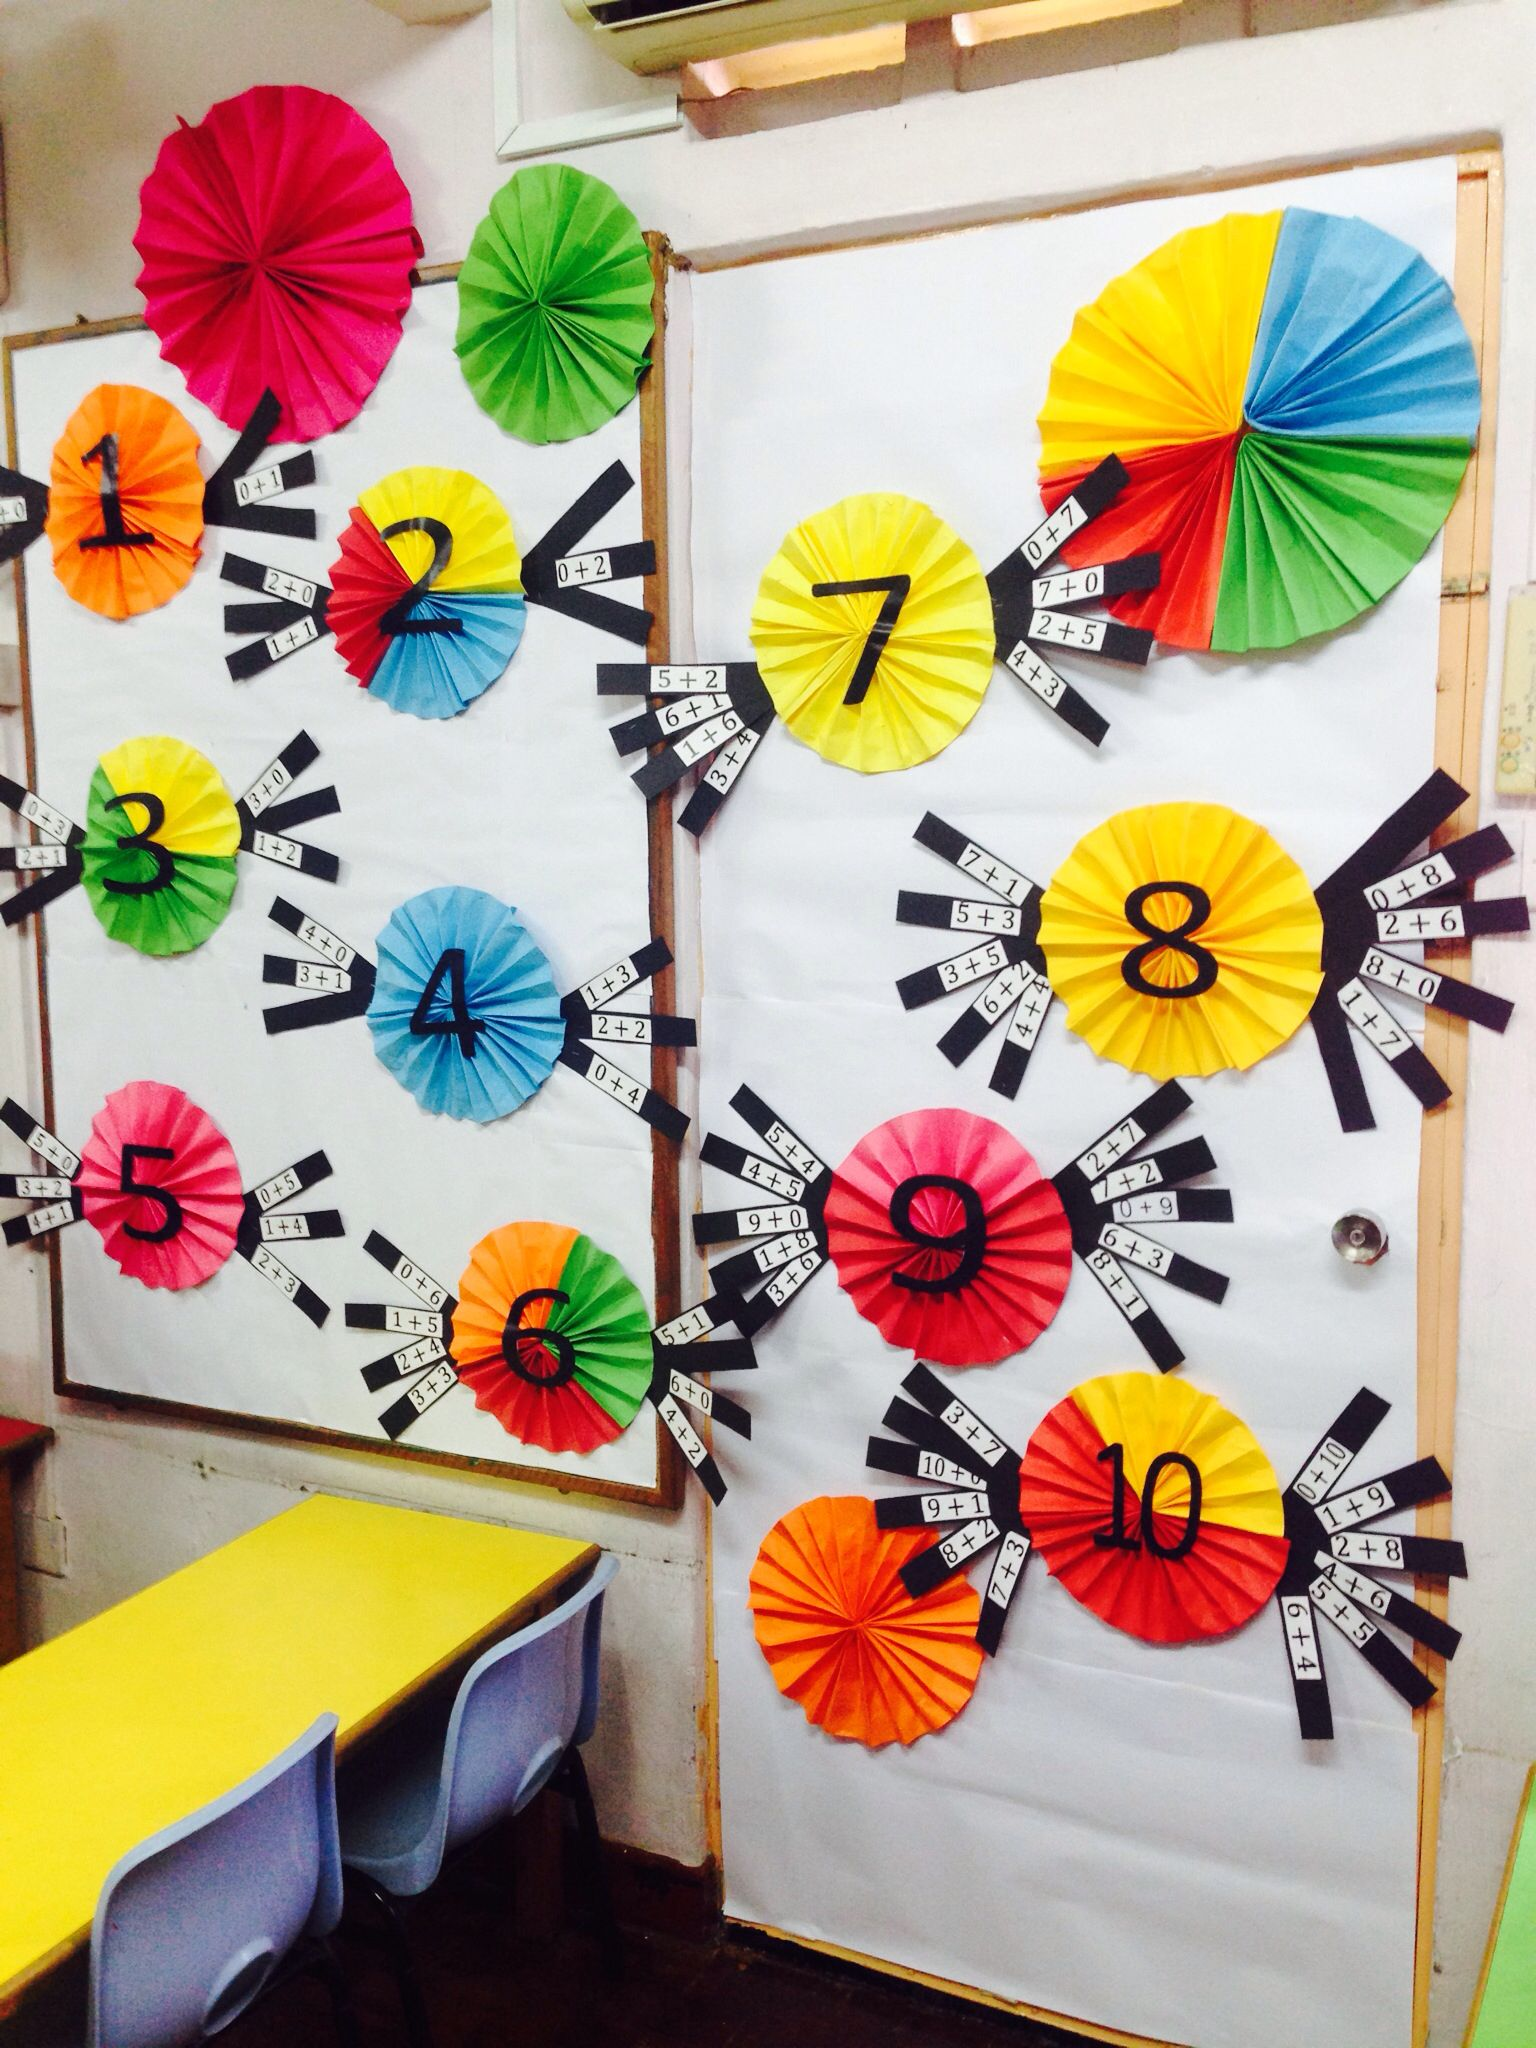 Number Bonds A Sweet Treat Our Classroom Display Learning Number Bonds Here In Kindergarten